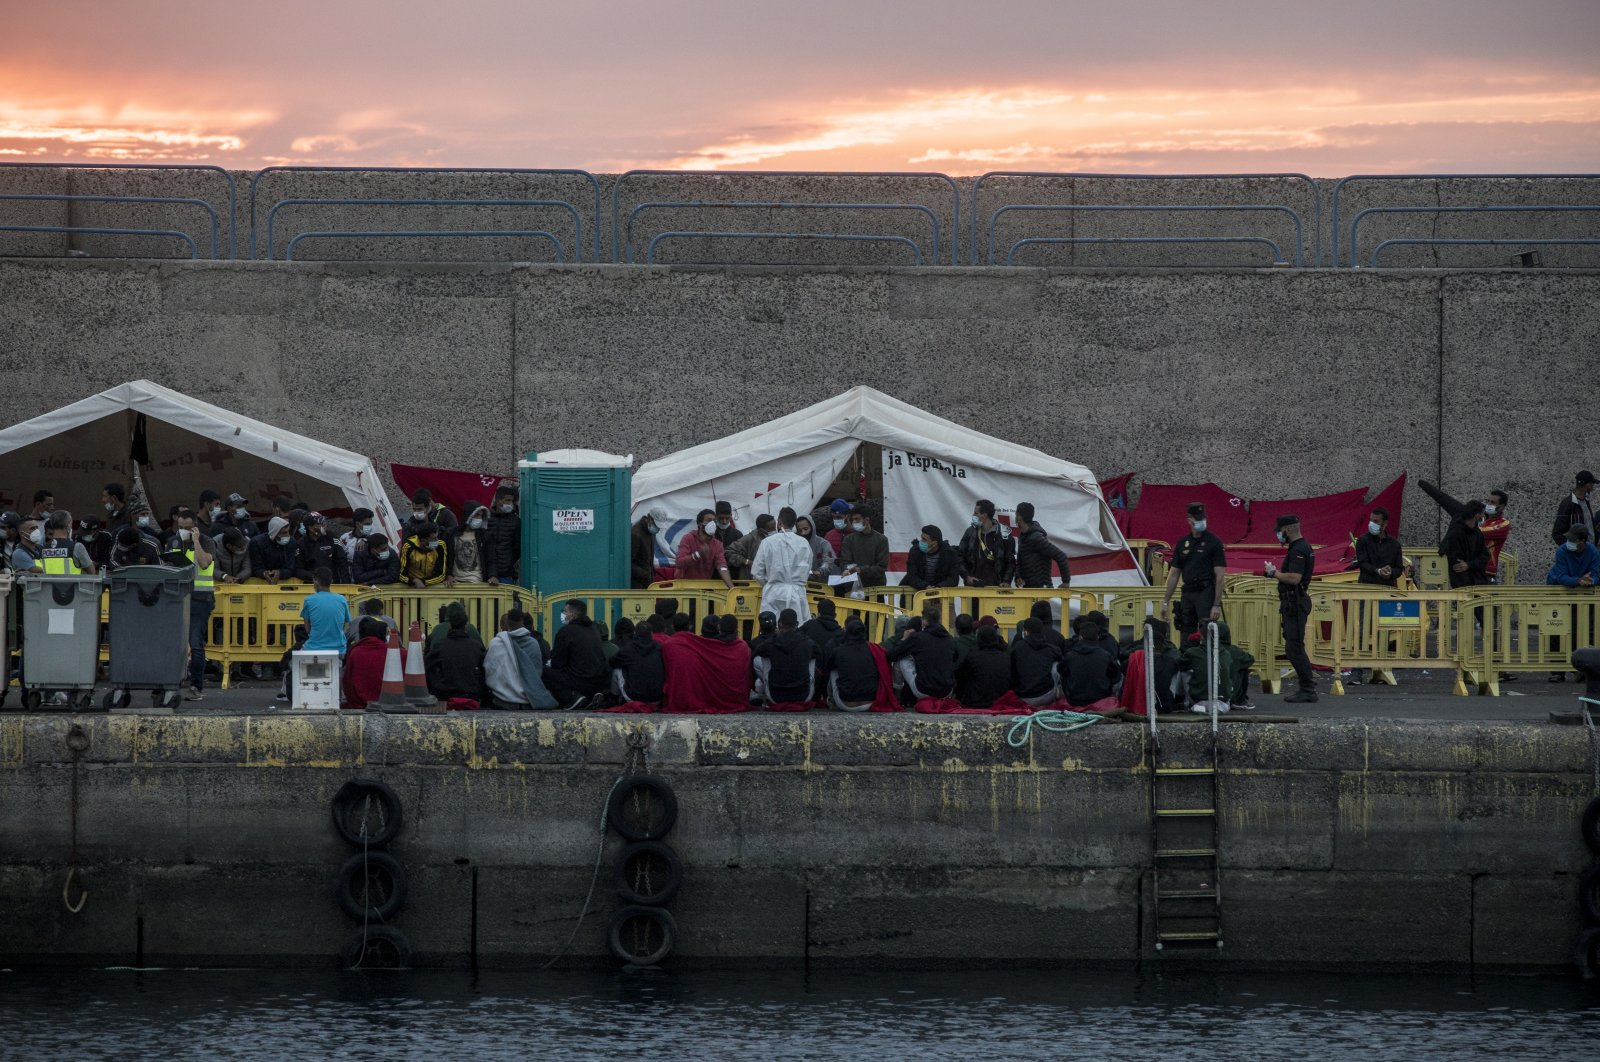 Migrants sit in Arguineguin port after their rescue, Gran Canaria island, Spain, Nov. 24, 2020. (AP Photo)